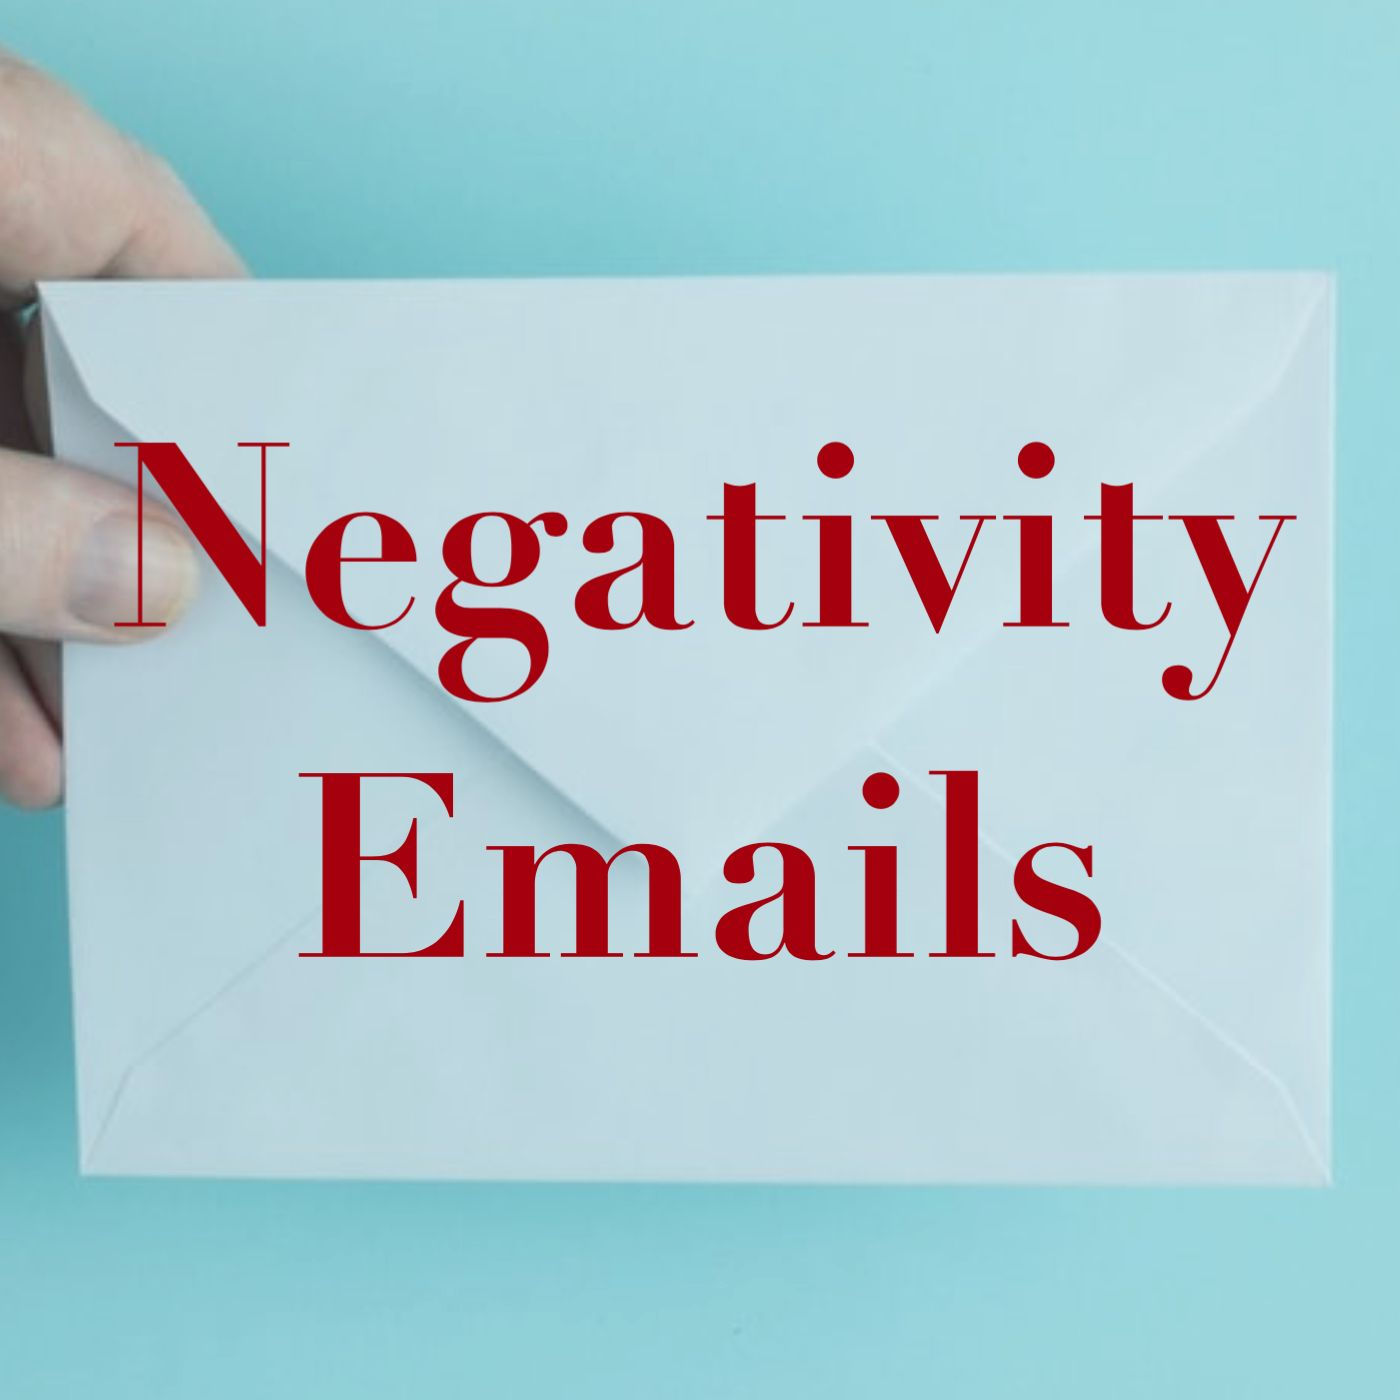 Negativity Emails #1